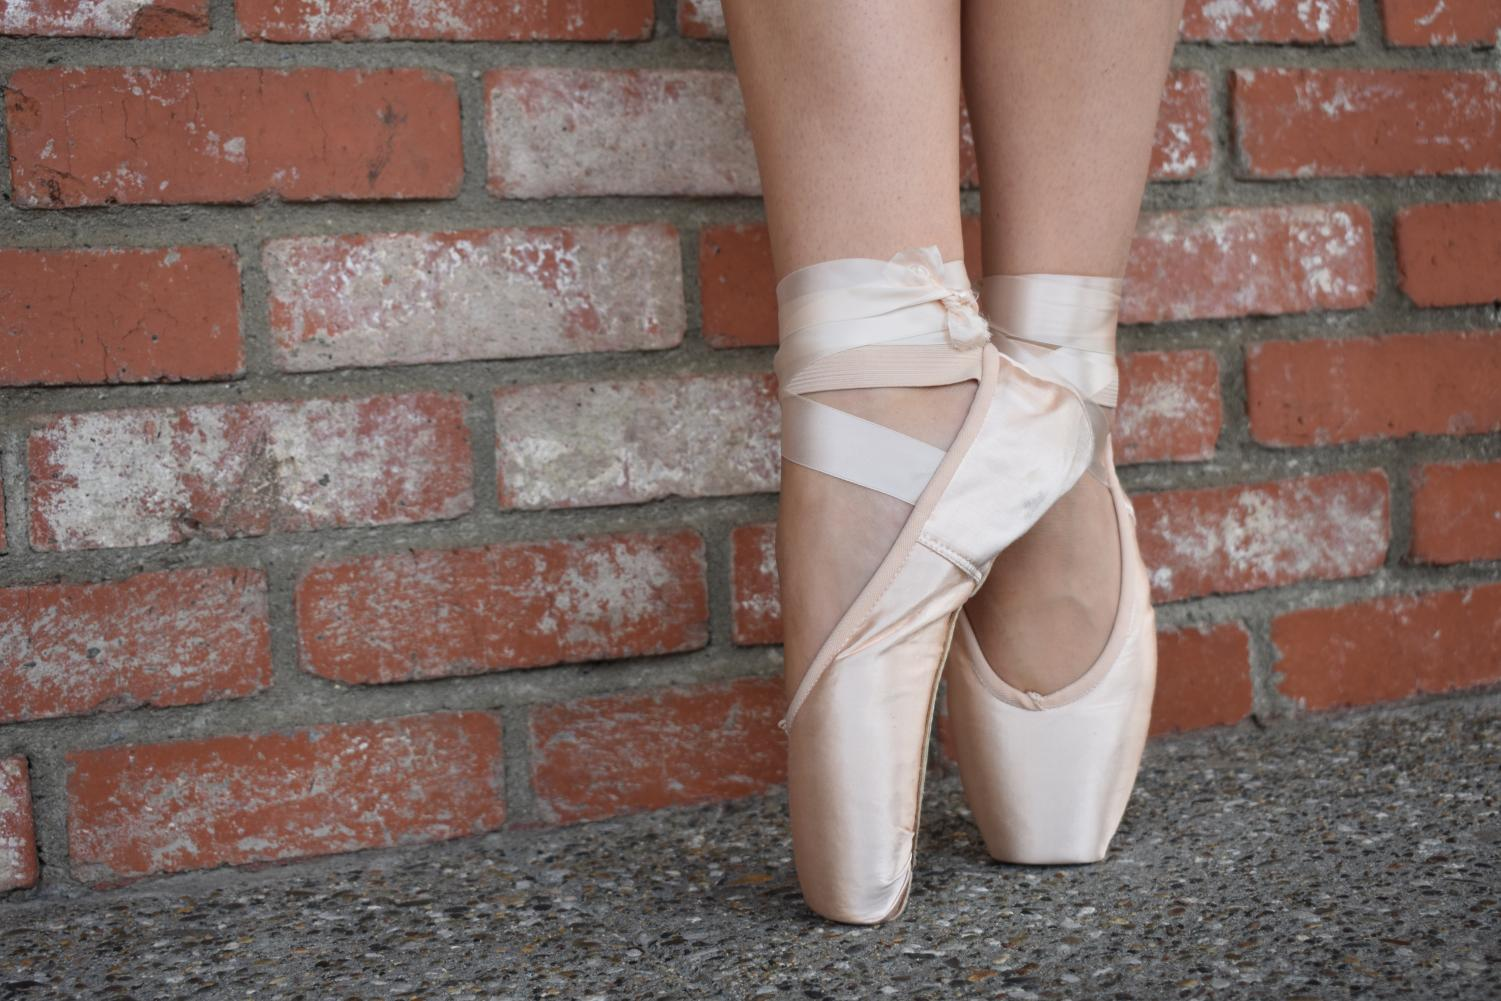 Dancing on pointe, is one of Wade's many talents, to reach that level of expertise in dance takes many years and hours of practice to achieve.